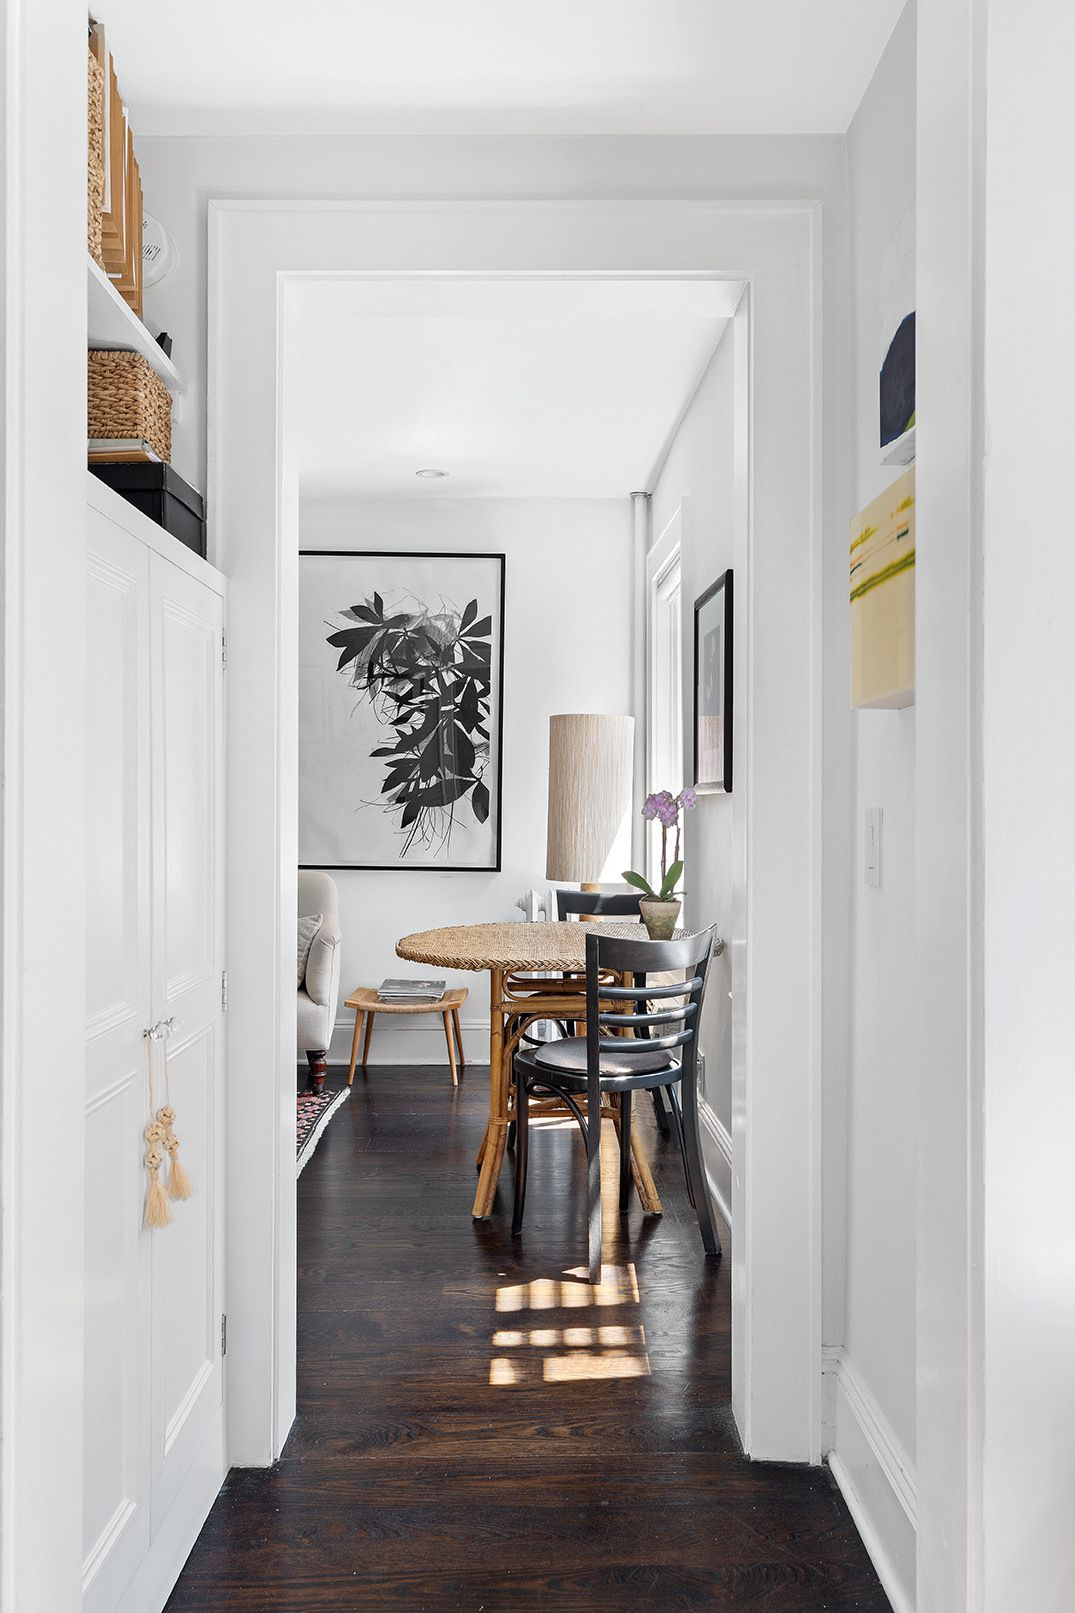 A hallway with hardwood floors, base moldings, and white cabinets.